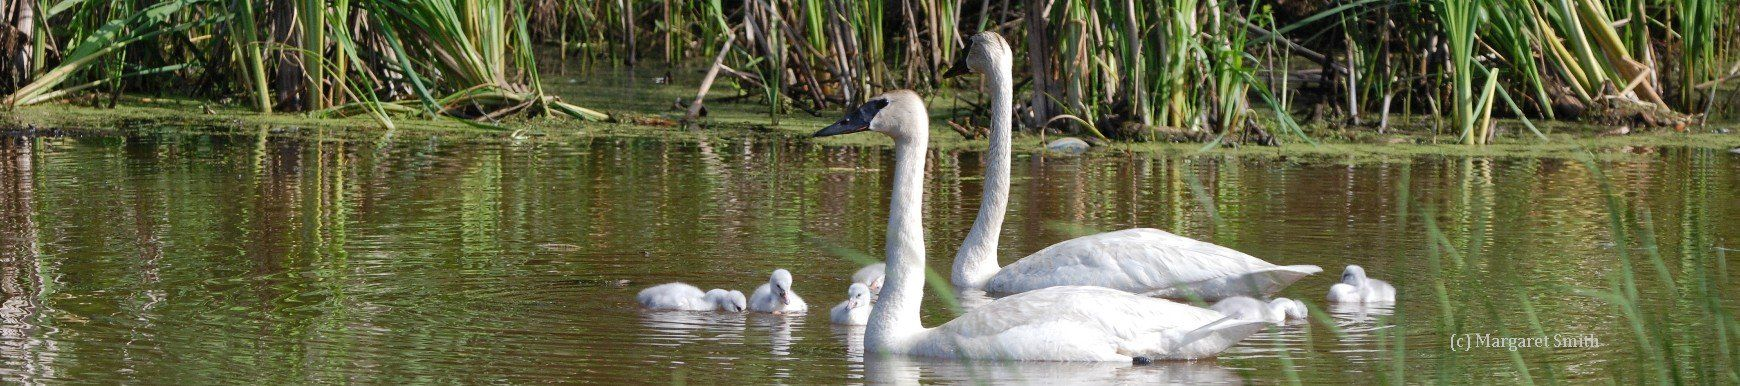 Your tax deductible donation will fund a Trumpeter swan sighting for reporting